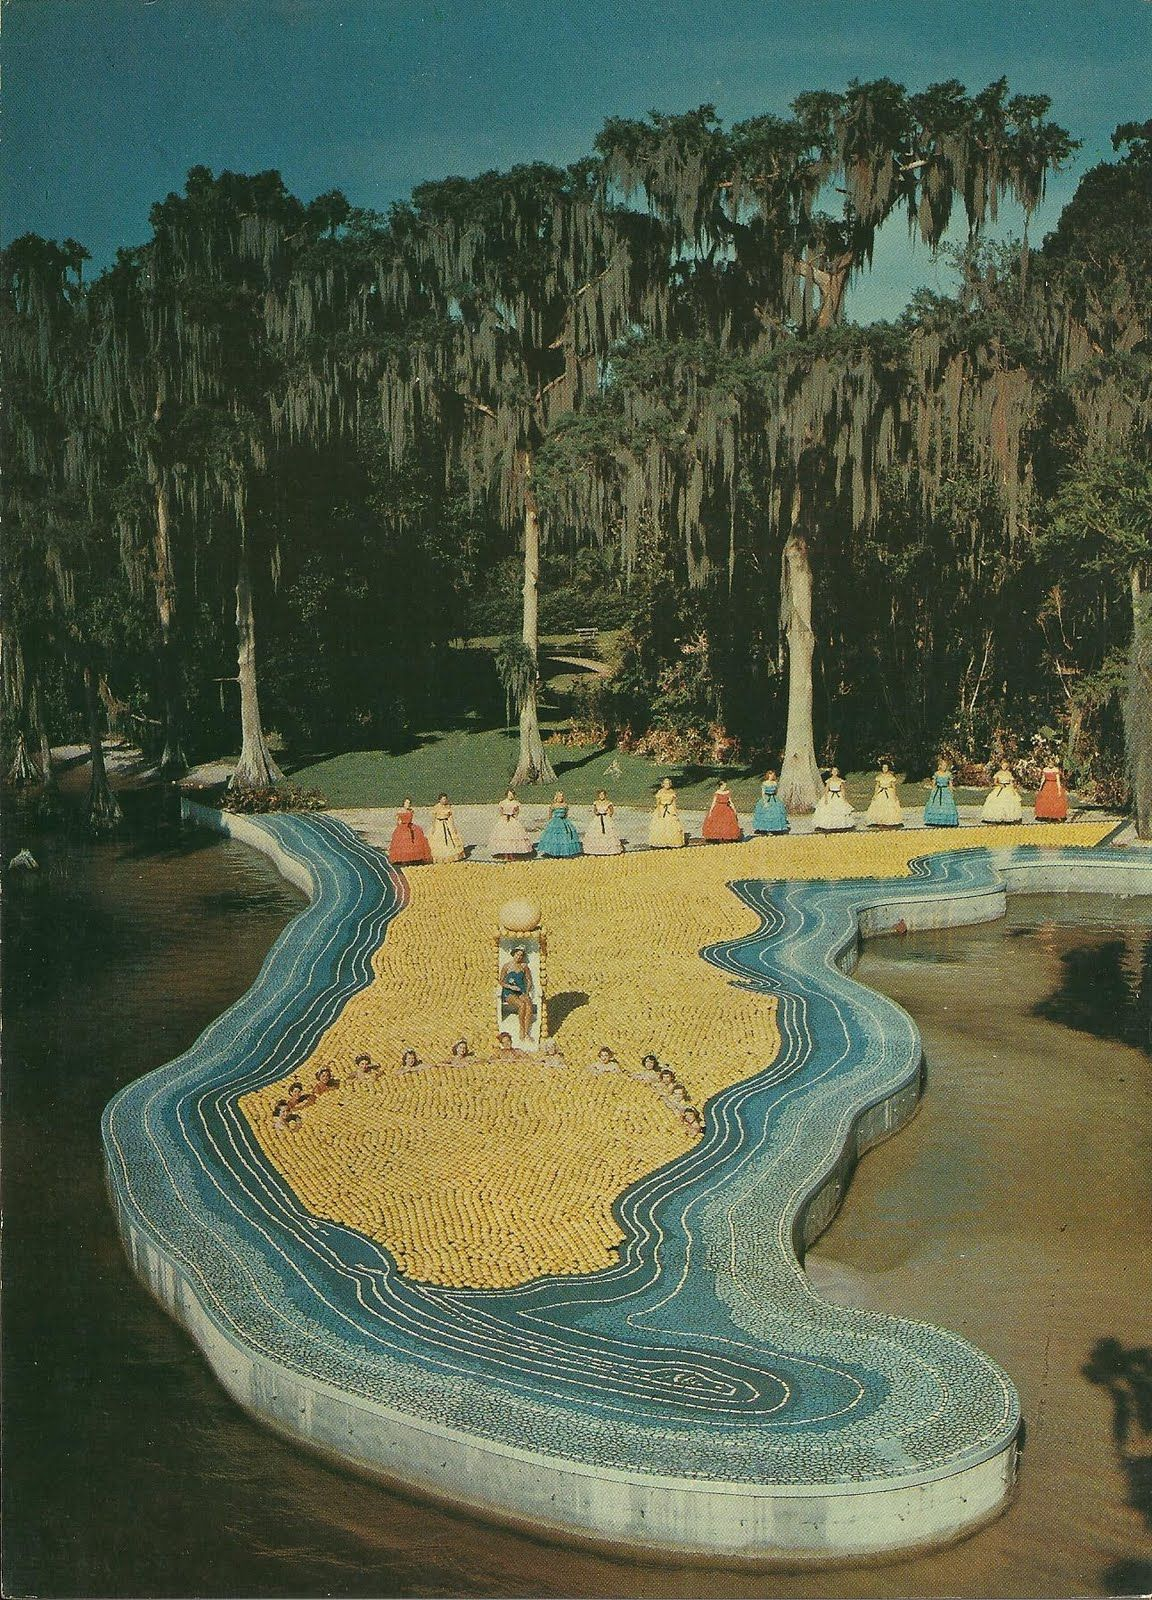 ESTHER WILLIAMS SWIMMINGPOOL: Cypress Gardens | She Had It ...